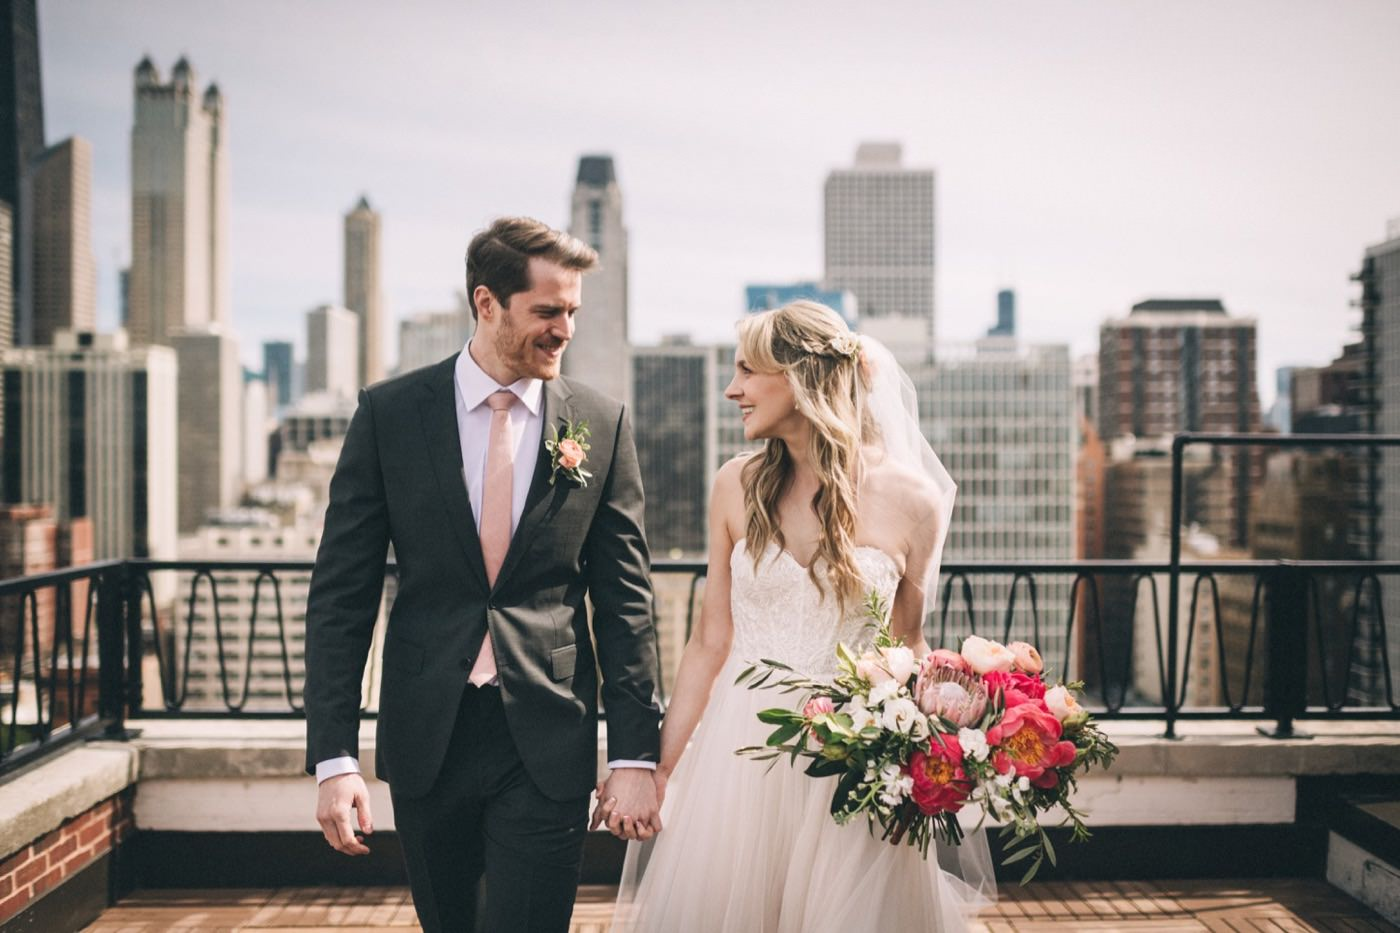 Lucy + Daniel - Industrial & Modern Chicago Wedding2019